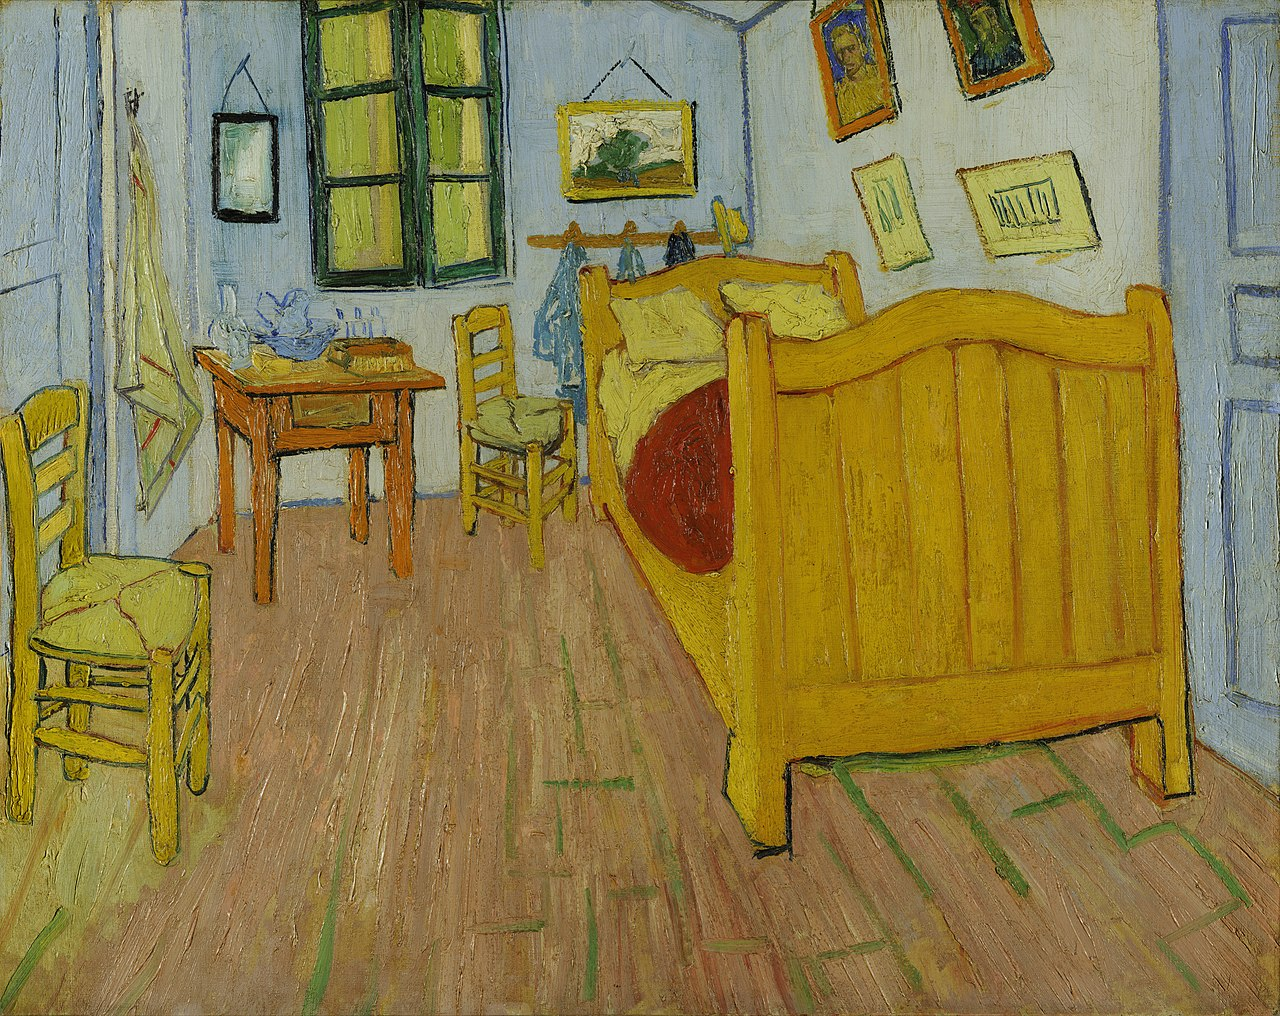 Datei:Vincent van Gogh - De slaapkamer - Google Art Project.jpg ...